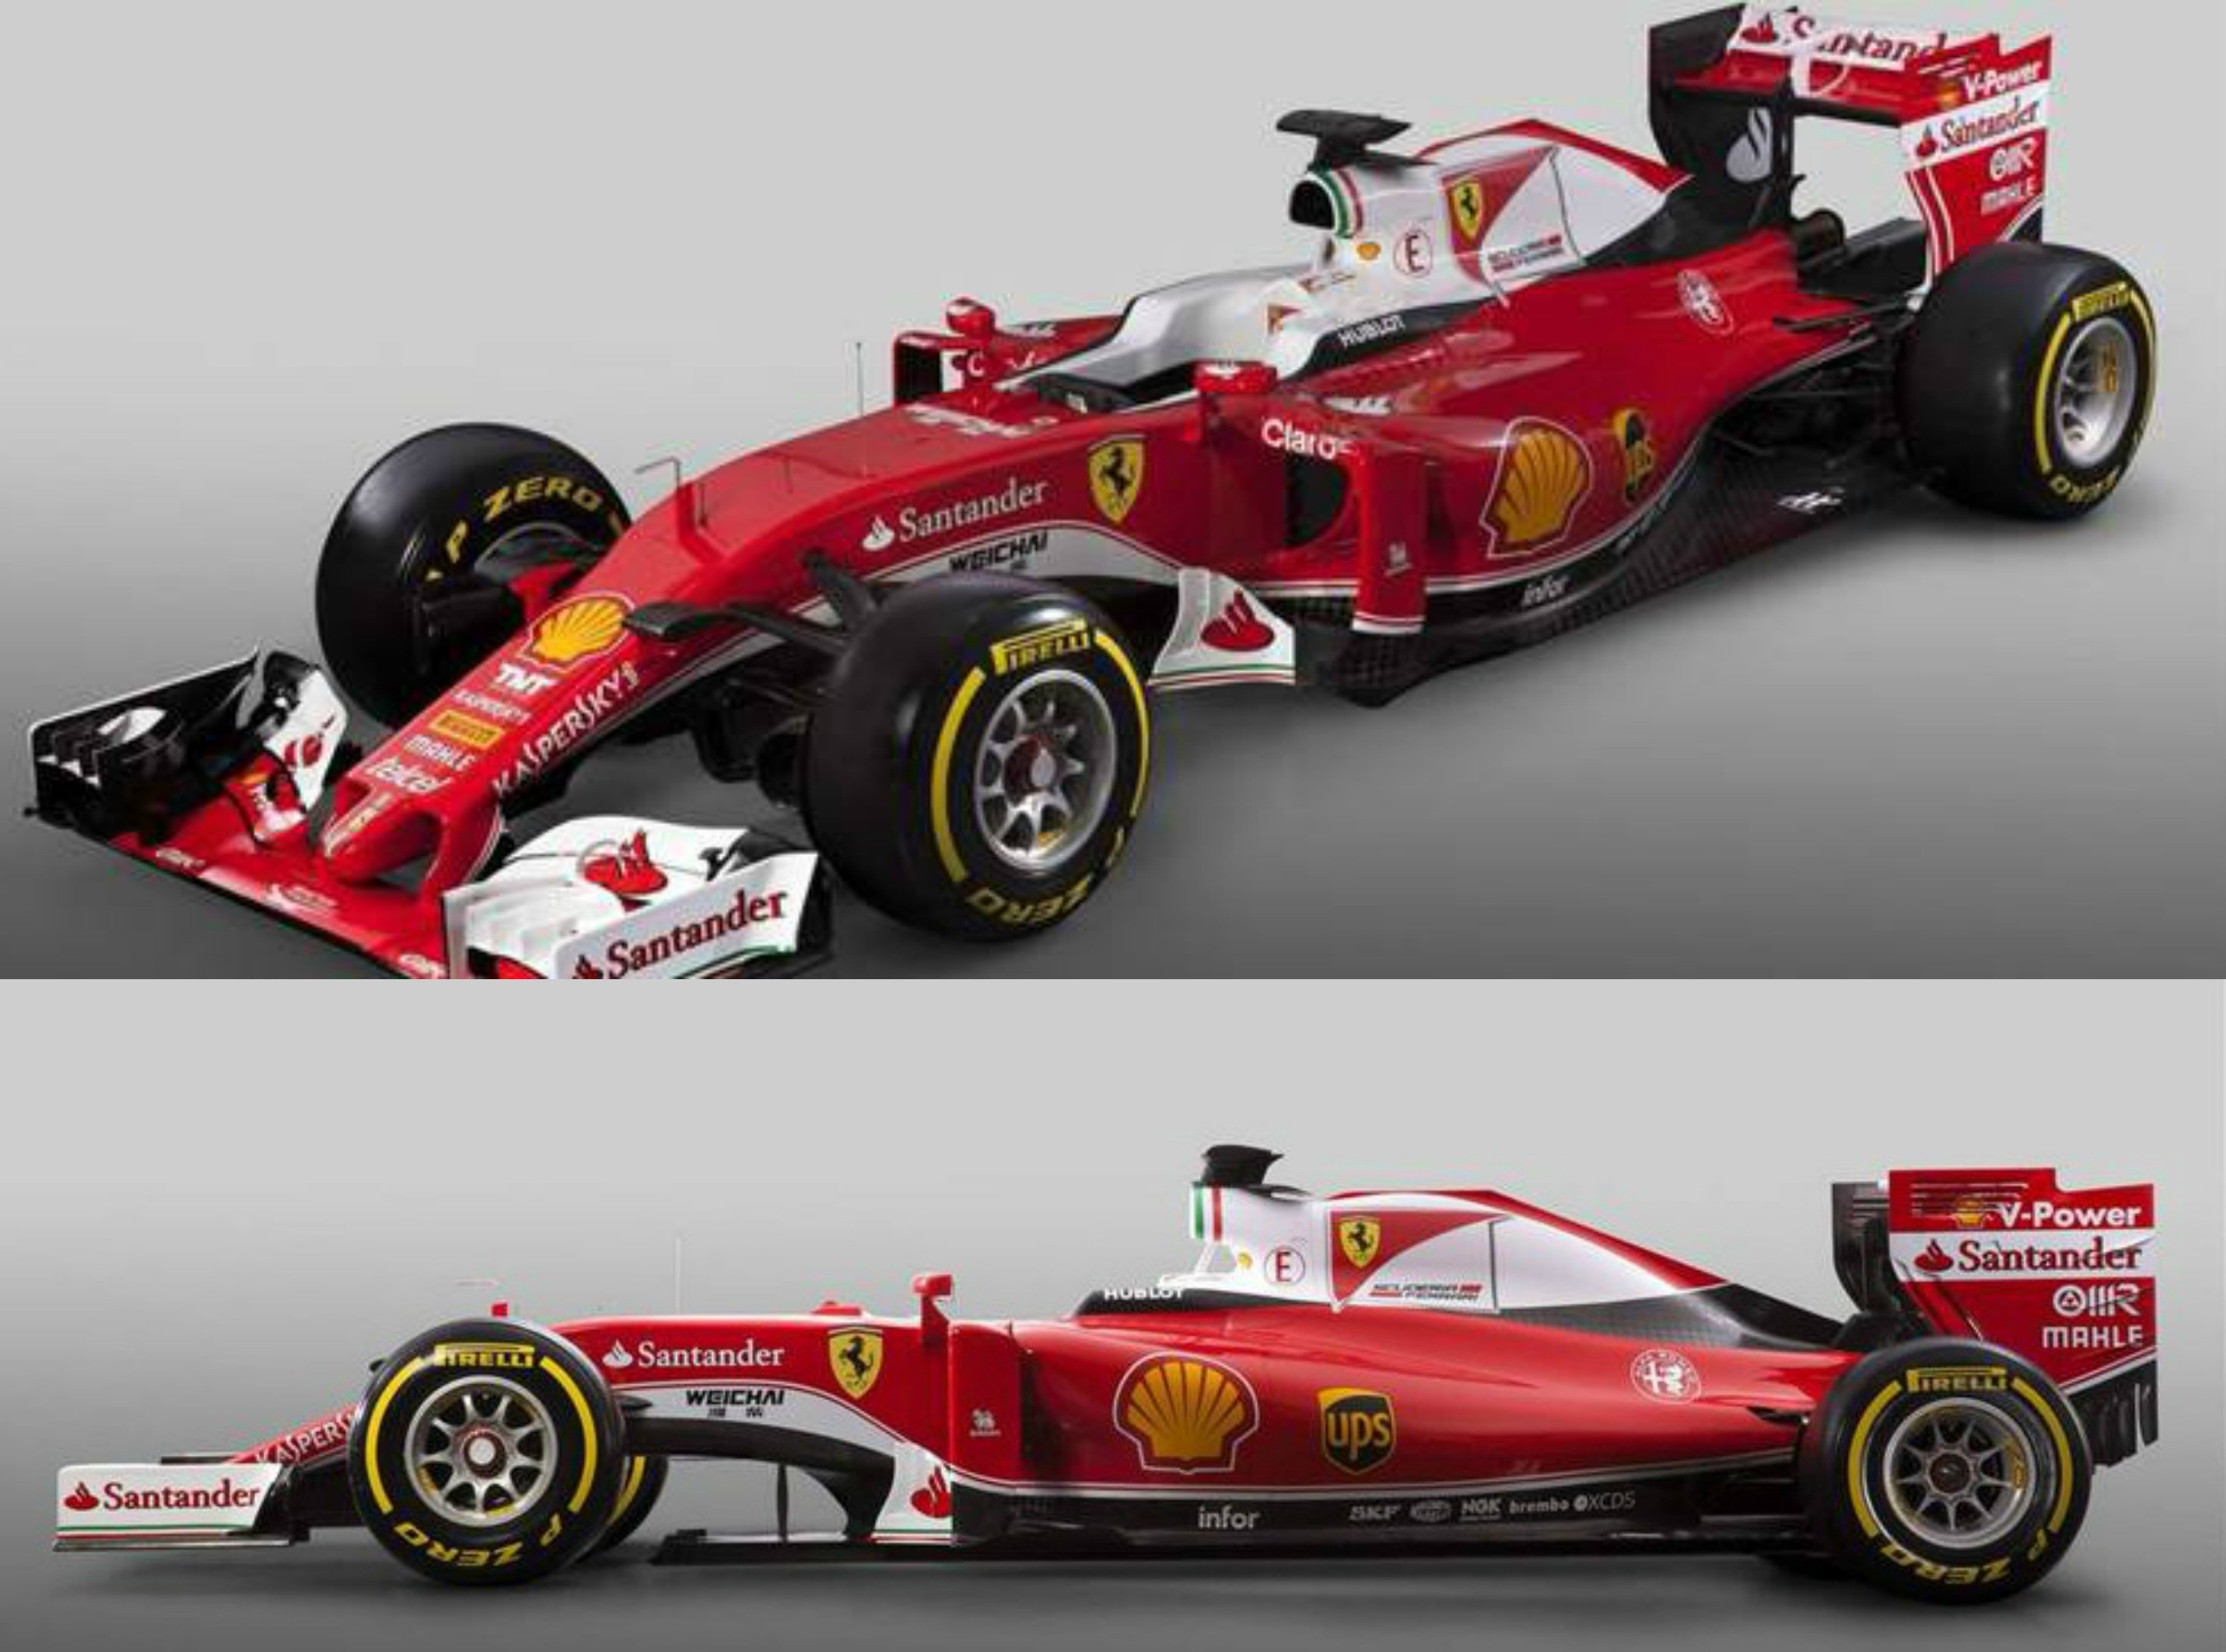 pour sa sf16 h ferrari reprend une ancienne livr e saison 2016 formule 1 eurosport. Black Bedroom Furniture Sets. Home Design Ideas